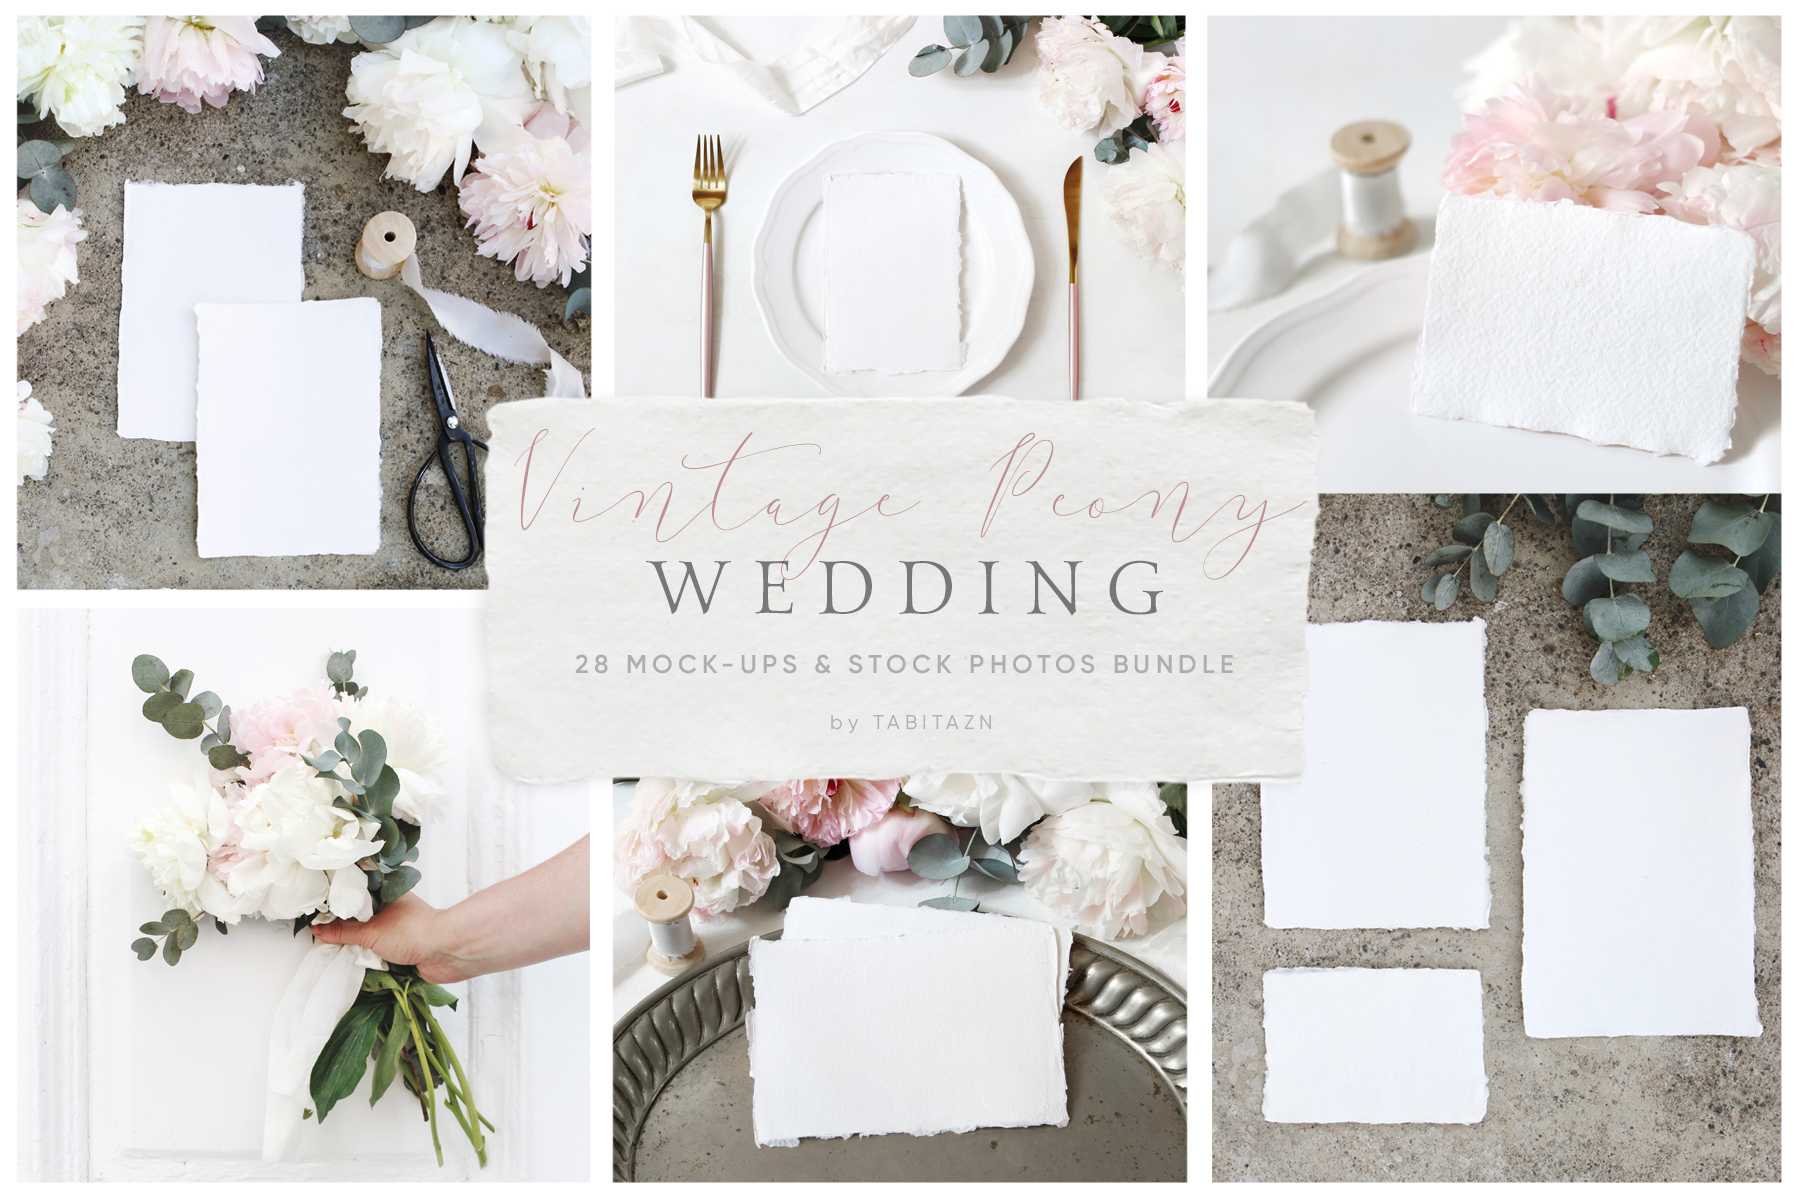 Vintage peony wedding mockups & stock photo bundle example image 1